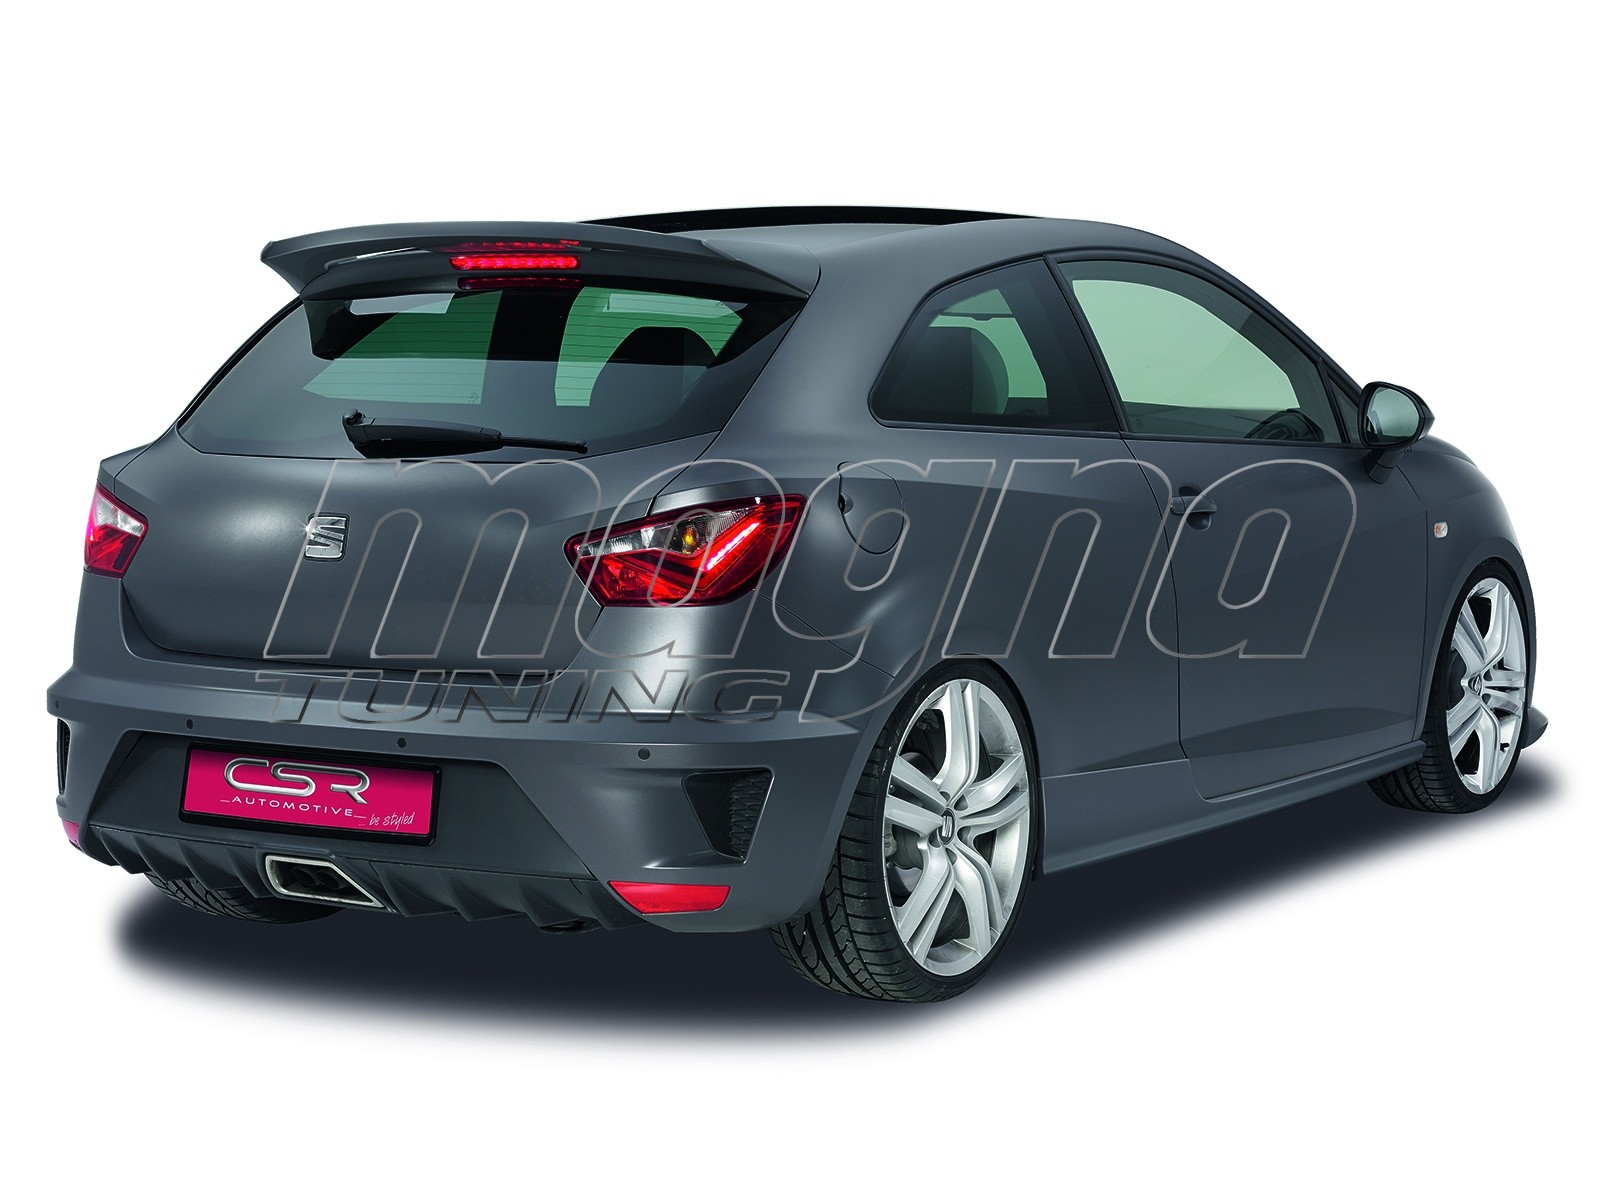 seat ibiza 6j cx rear wing. Black Bedroom Furniture Sets. Home Design Ideas